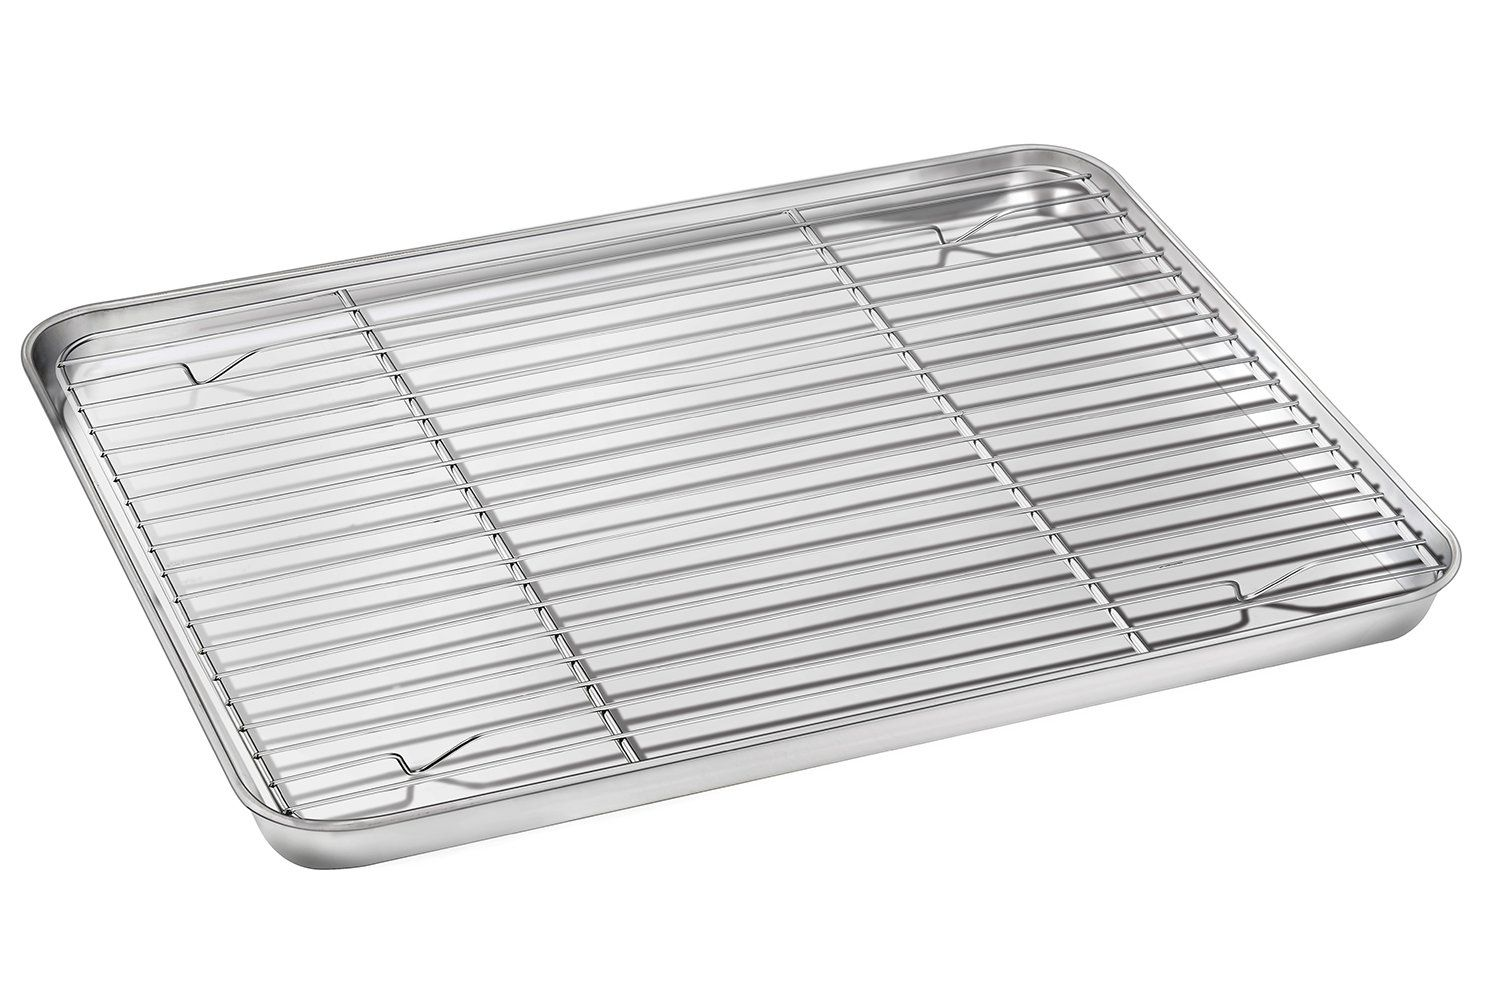 Baking Sheet With Rack Set E Far Stainless Steel Baking Pan